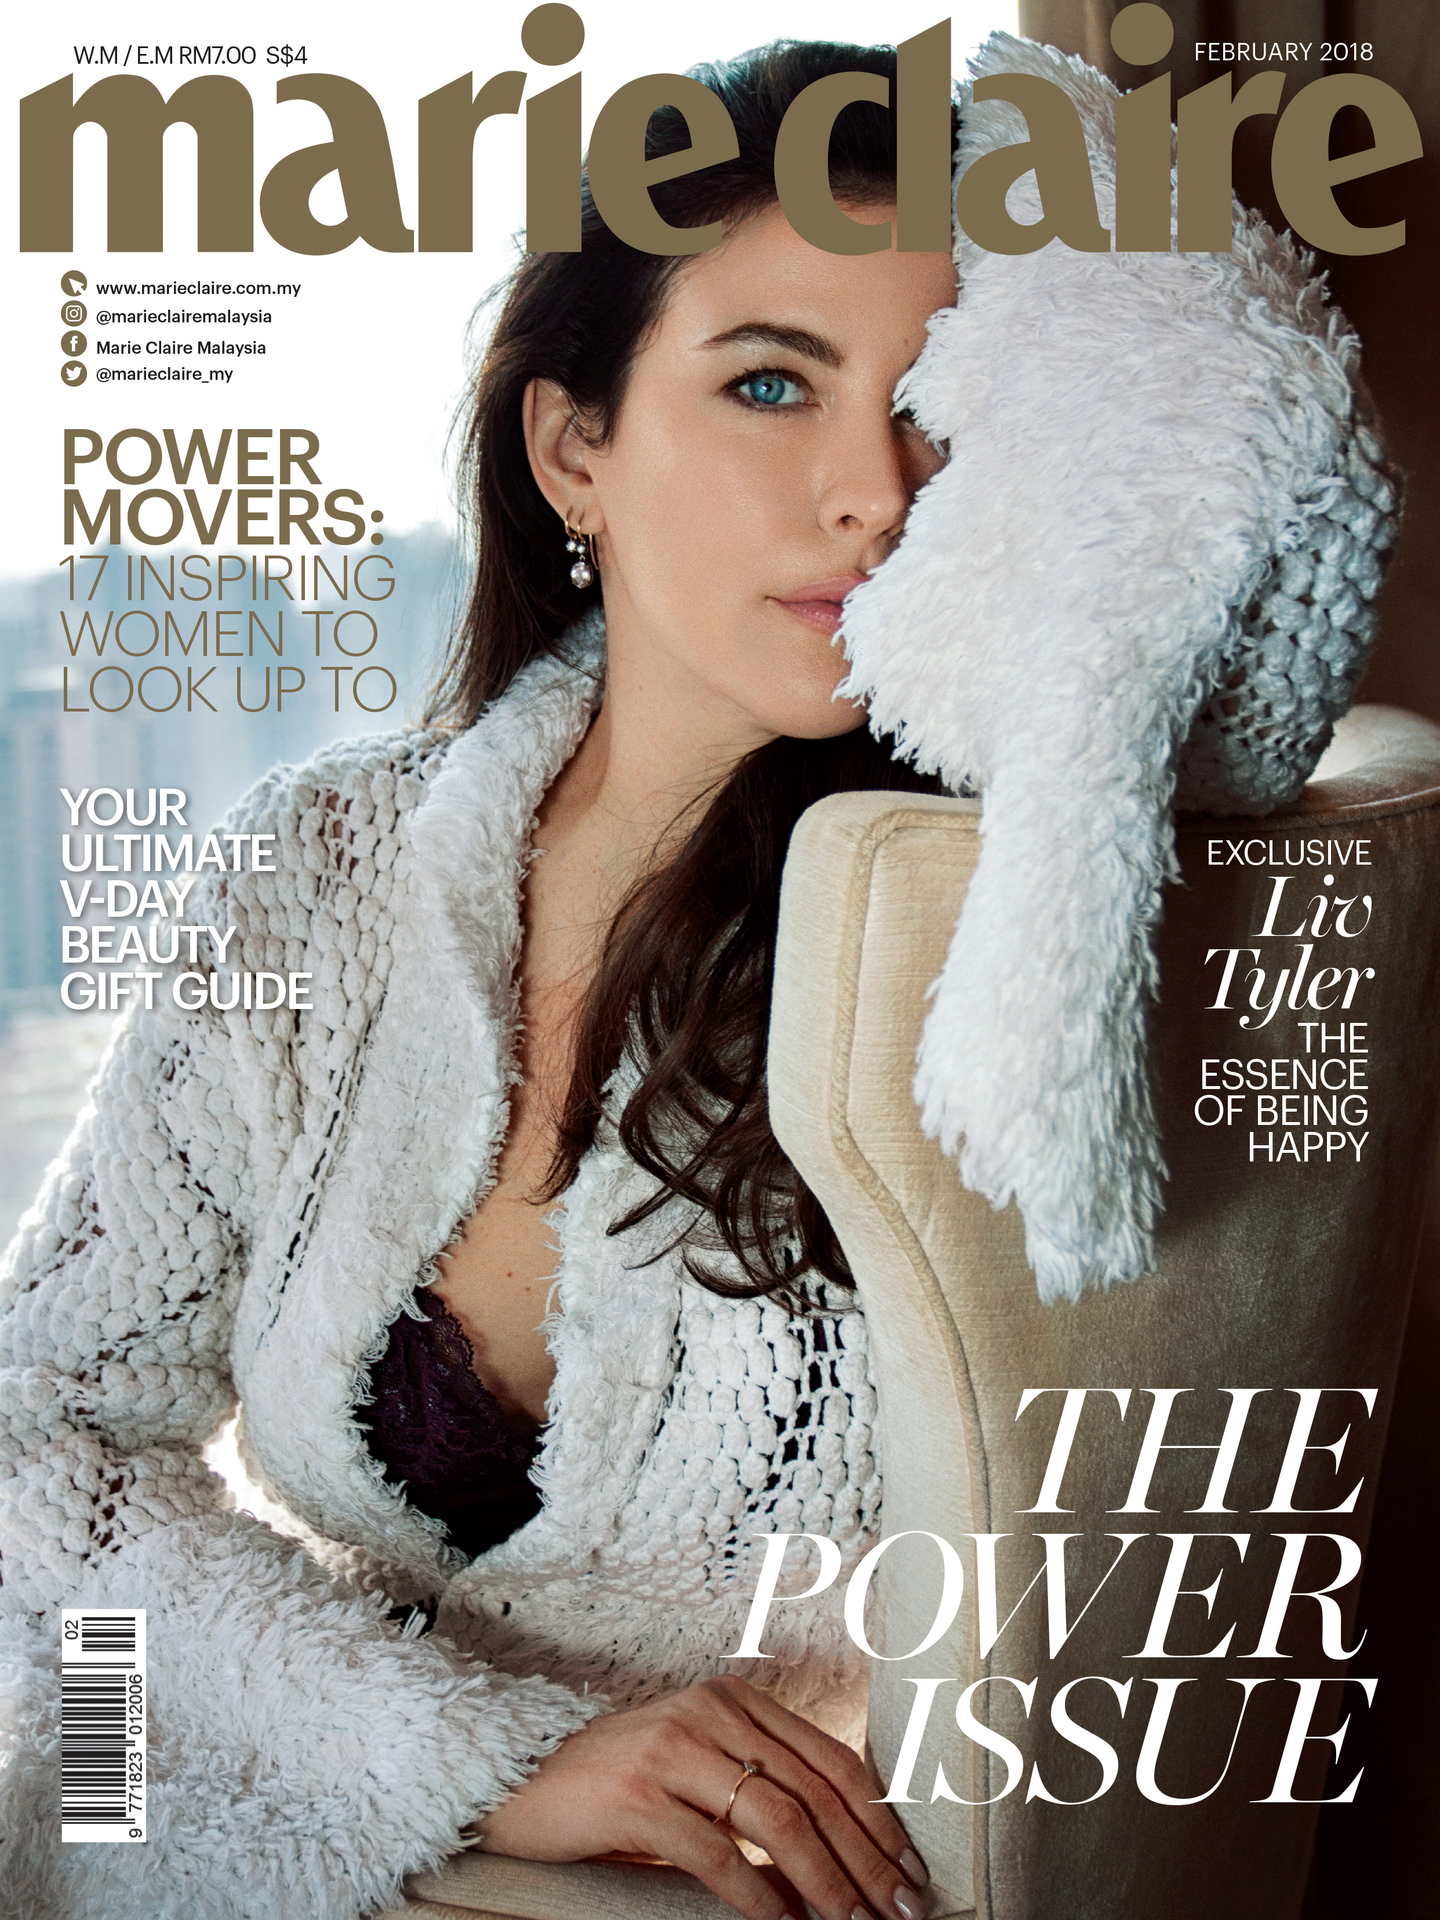 MARIE CLAIRE COVER - LIV TYLER FEB 18